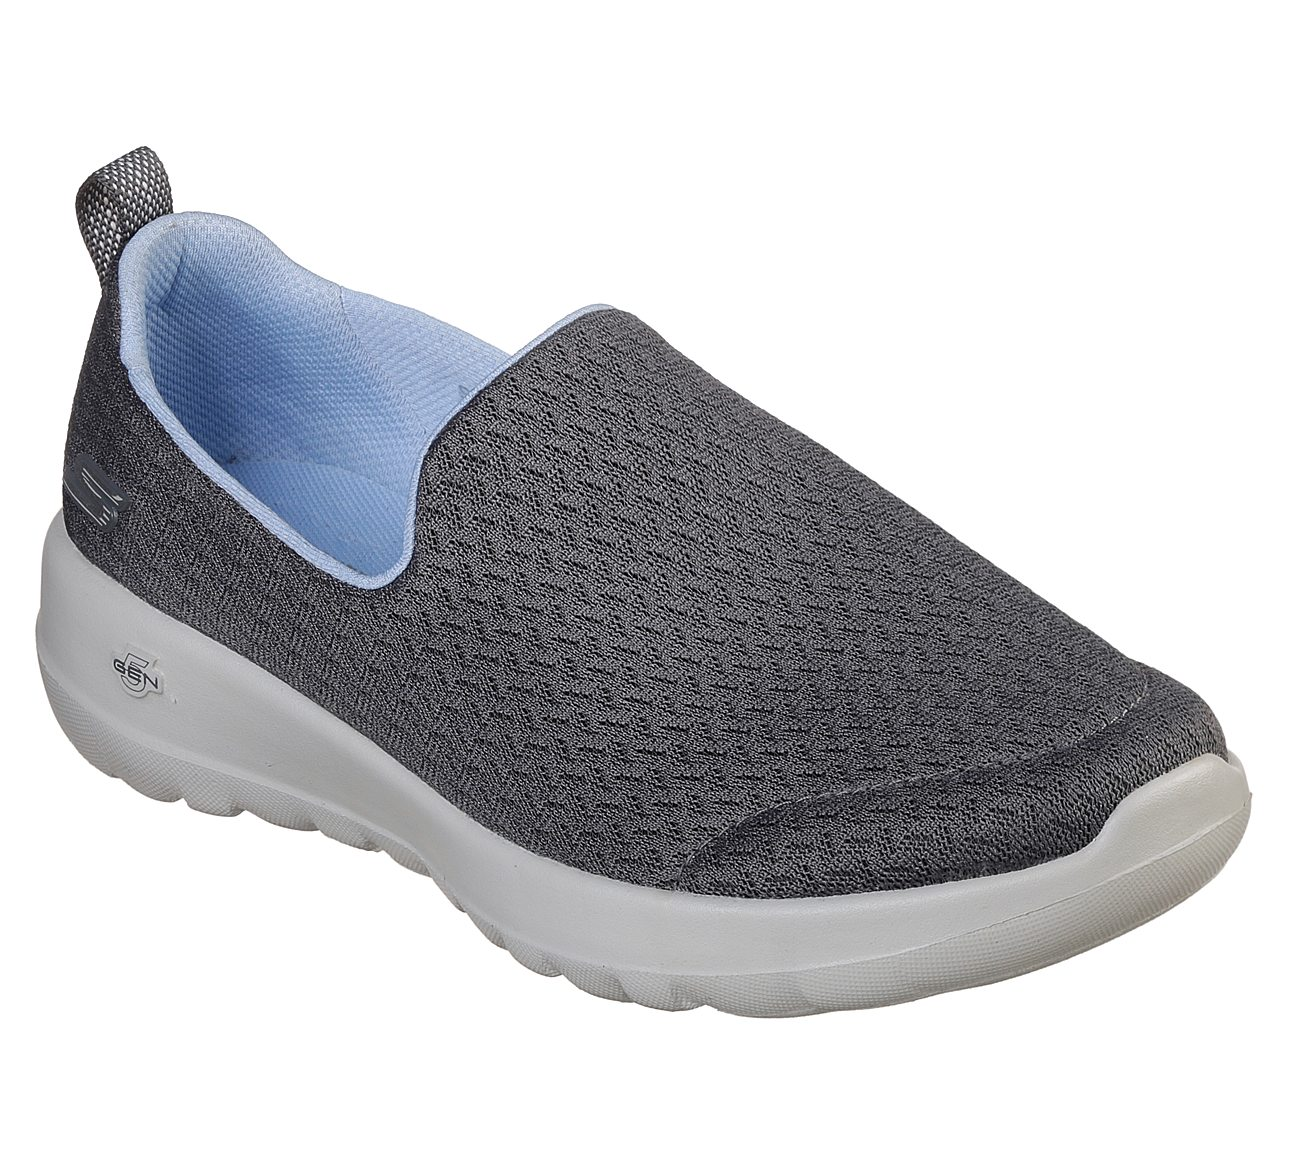 super popular c43c6 e5cc1 Skechers GOwalk Joy - Rejoice. Click tap to zoom